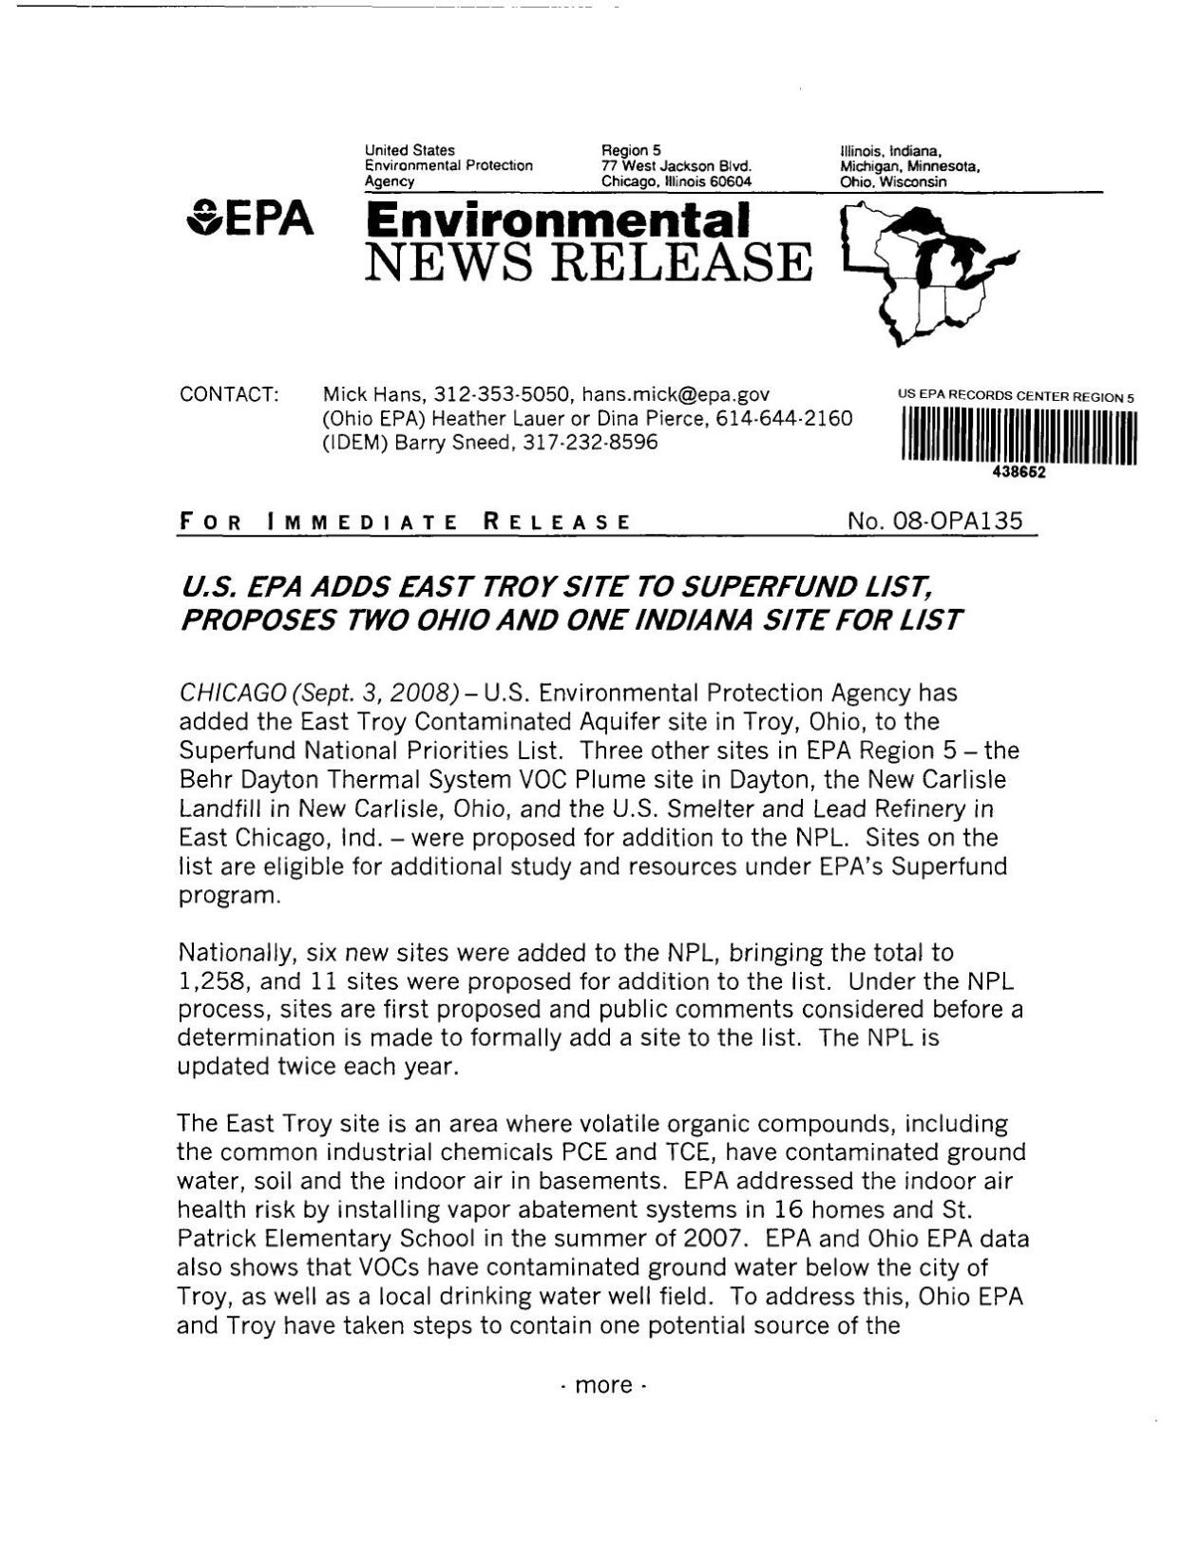 2008 EPA release on Superfund proposals